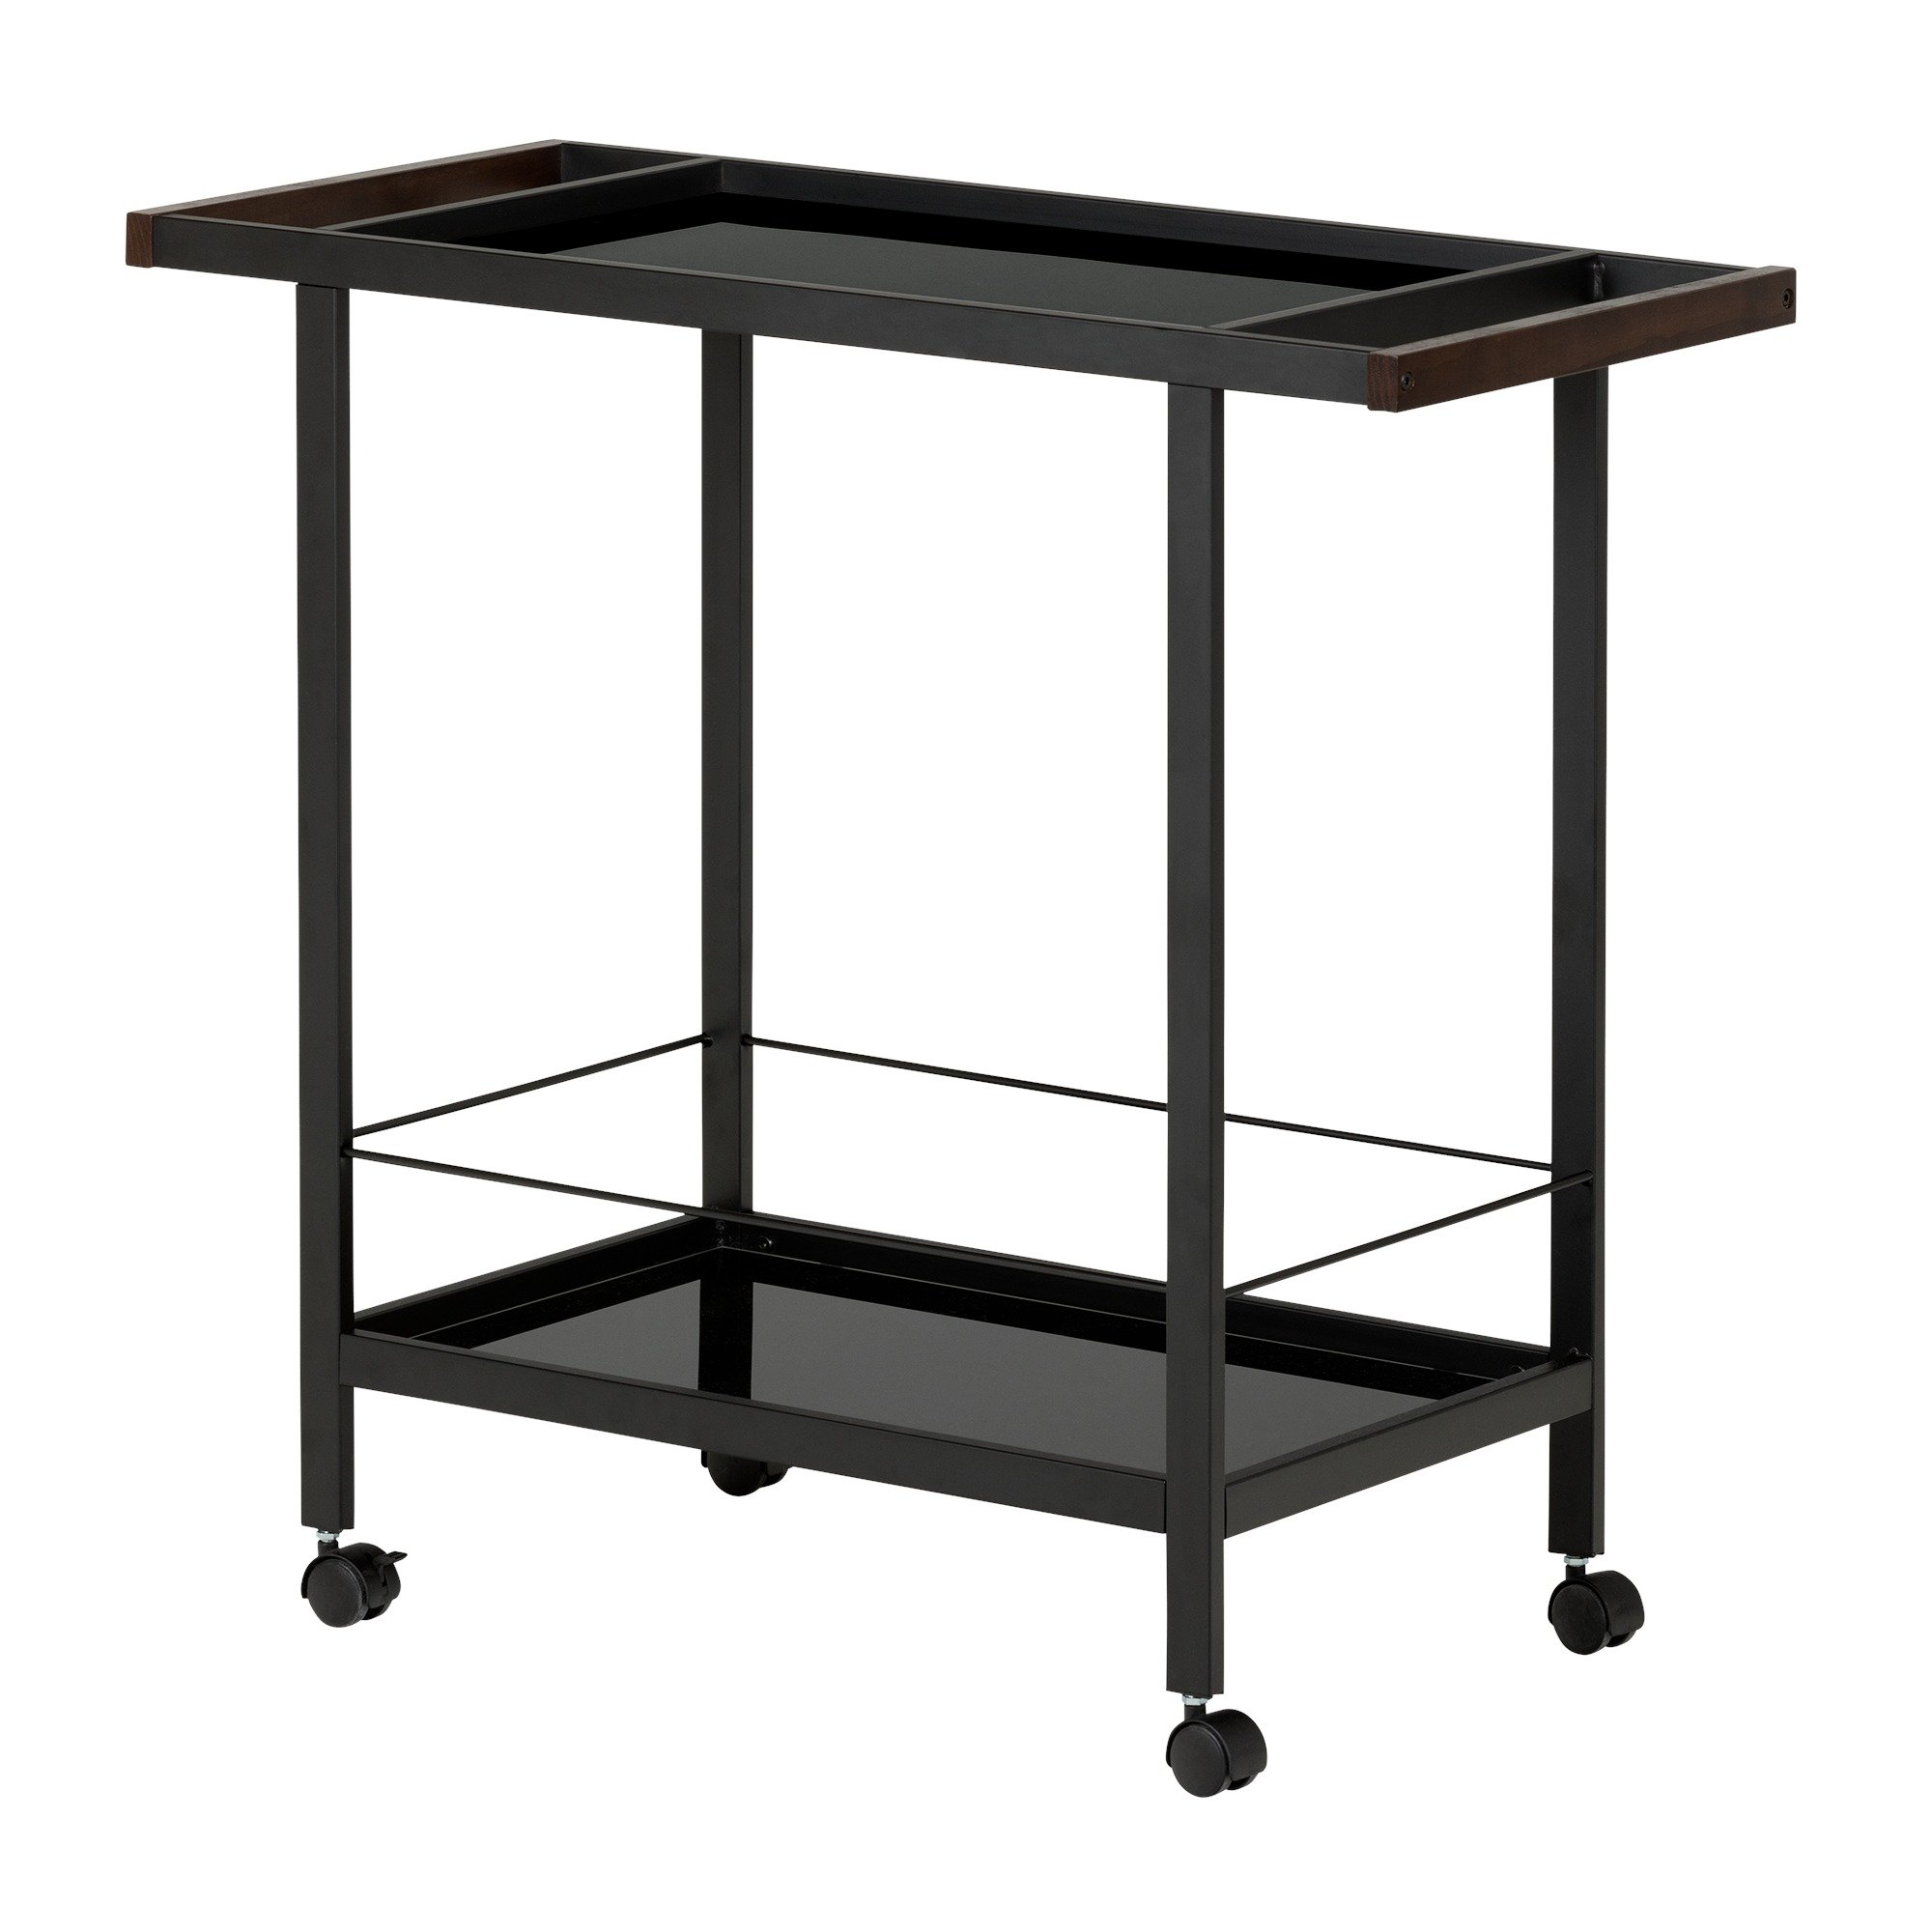 South Shore Metal Bar Cart on Wheels with Glass Shelves, Black Tempered Glass by South Shore